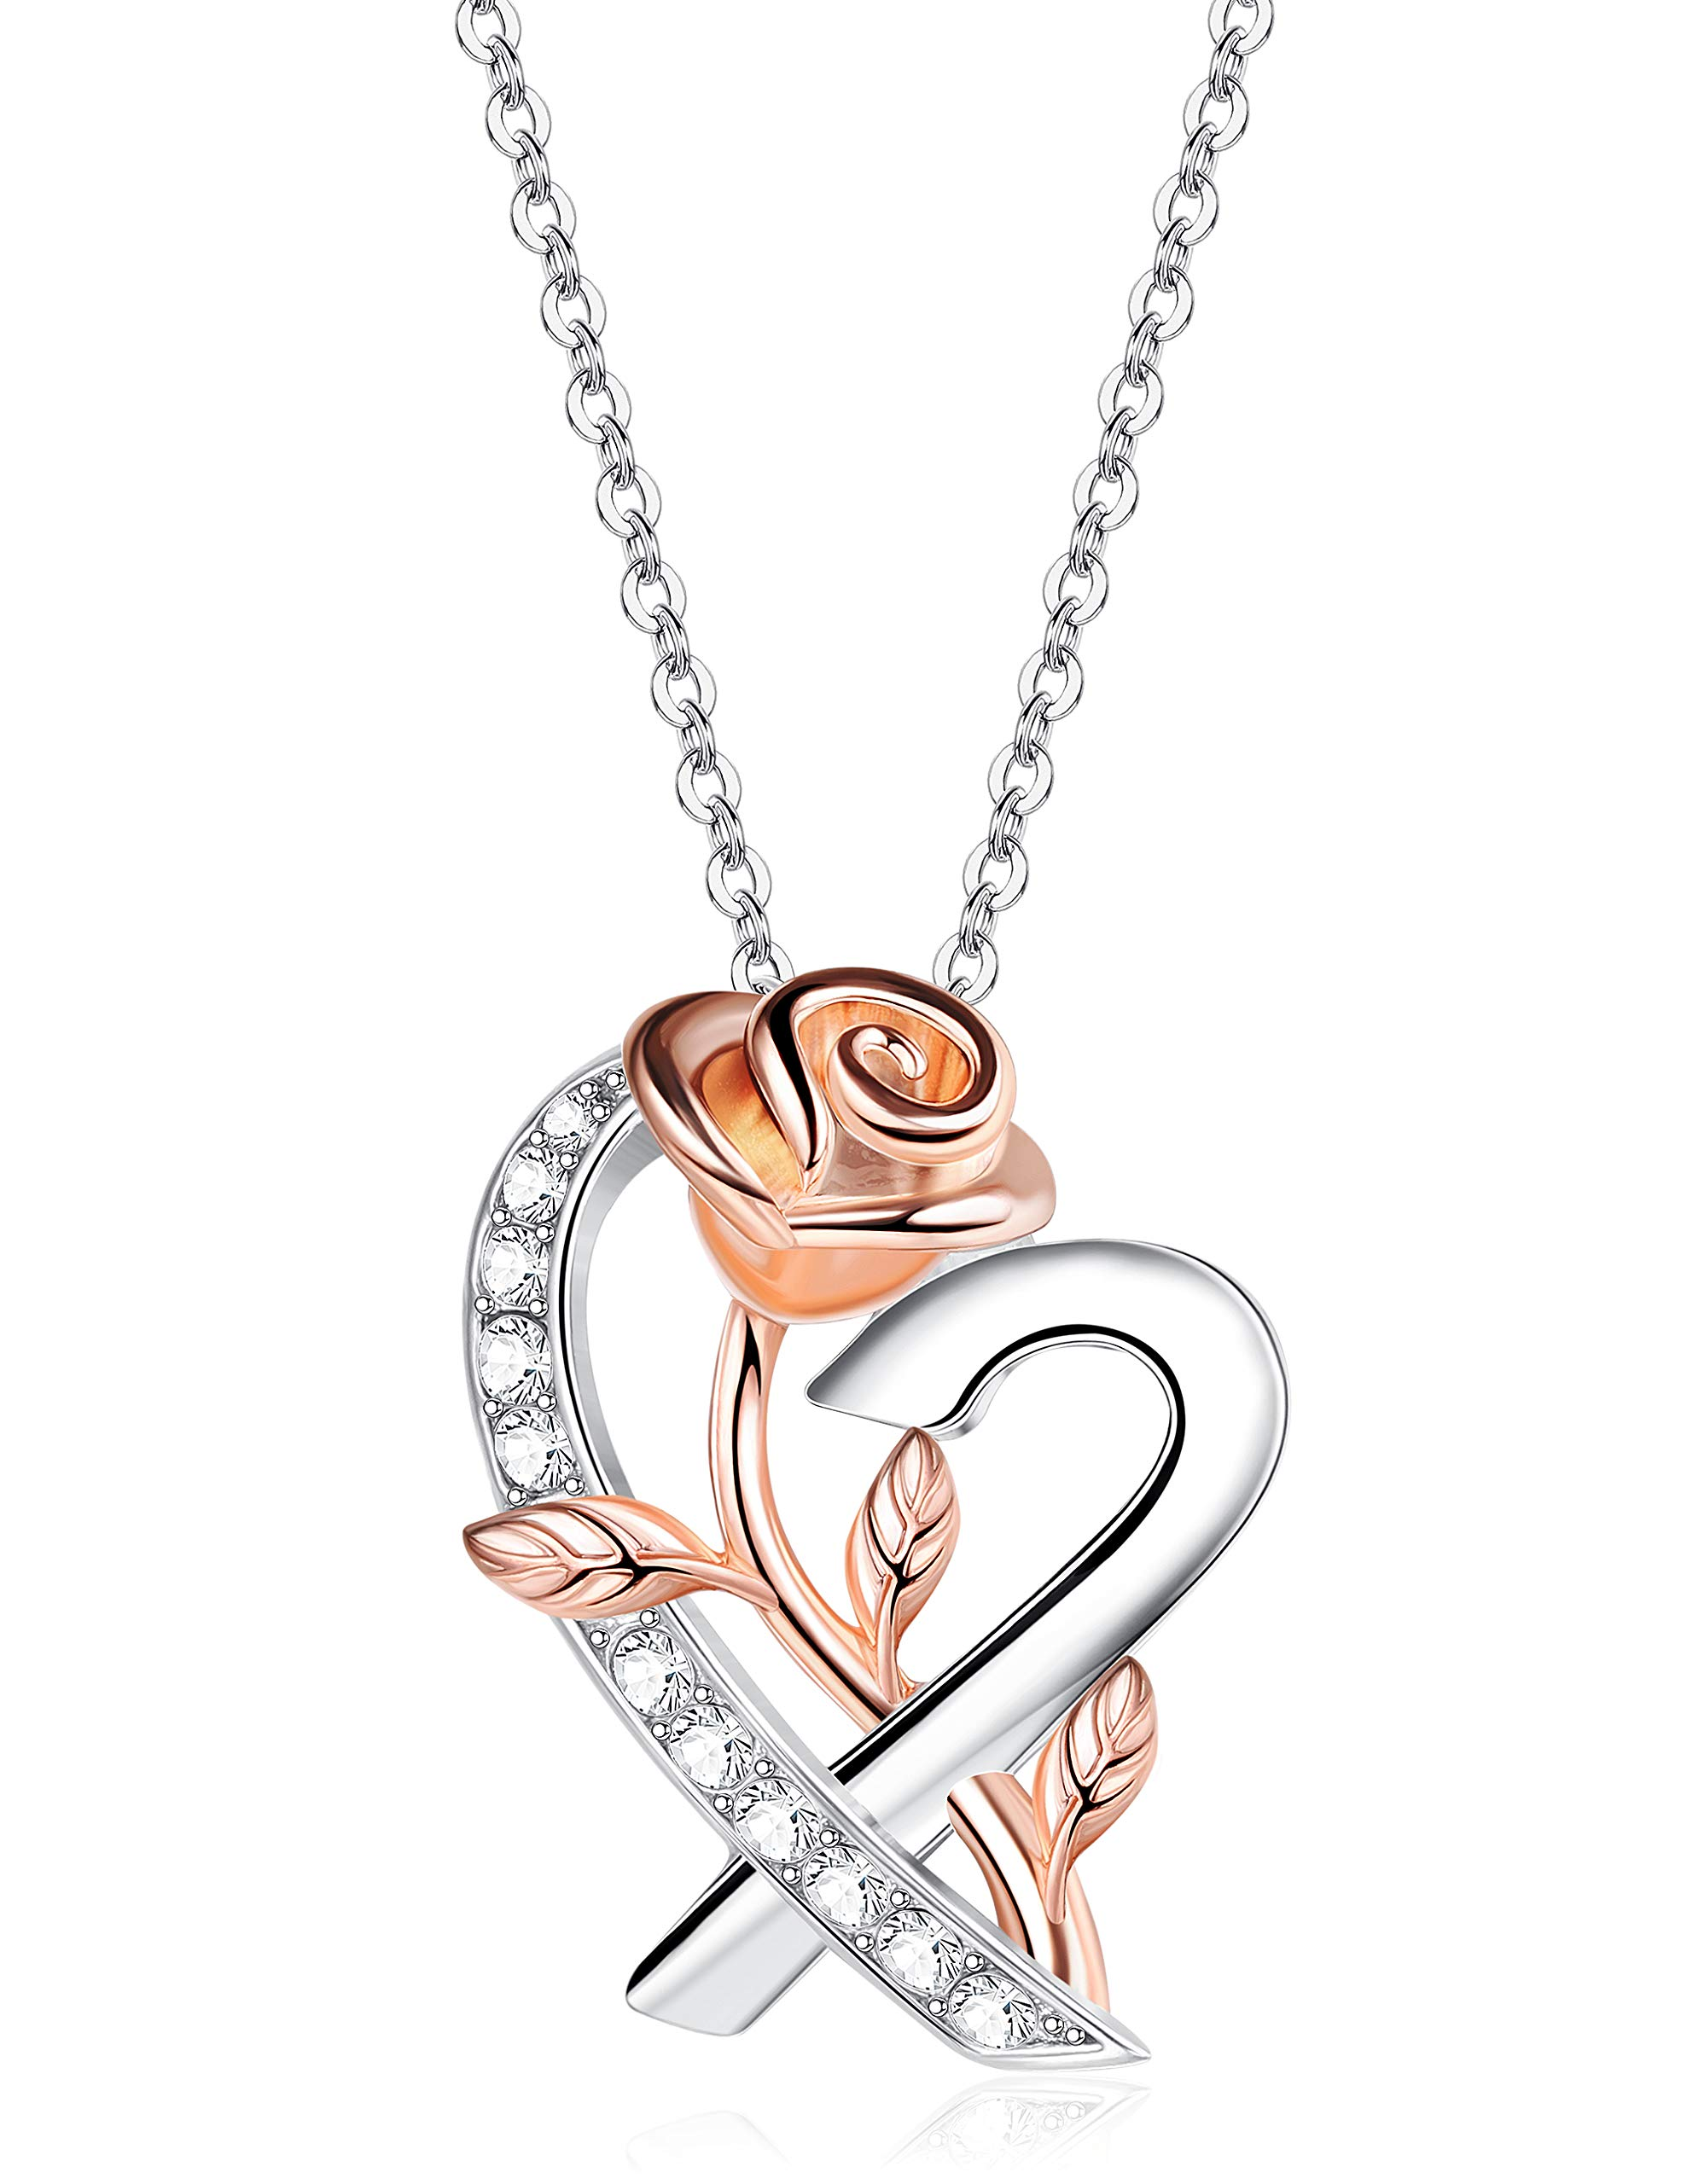 Sllaiss Sterling Silver Rose Heart Pendant Necklace for Women 14K Gold Plated Flower Love Pendant Crystals from Swarovski Mother's Day Jewelry Gift for Women